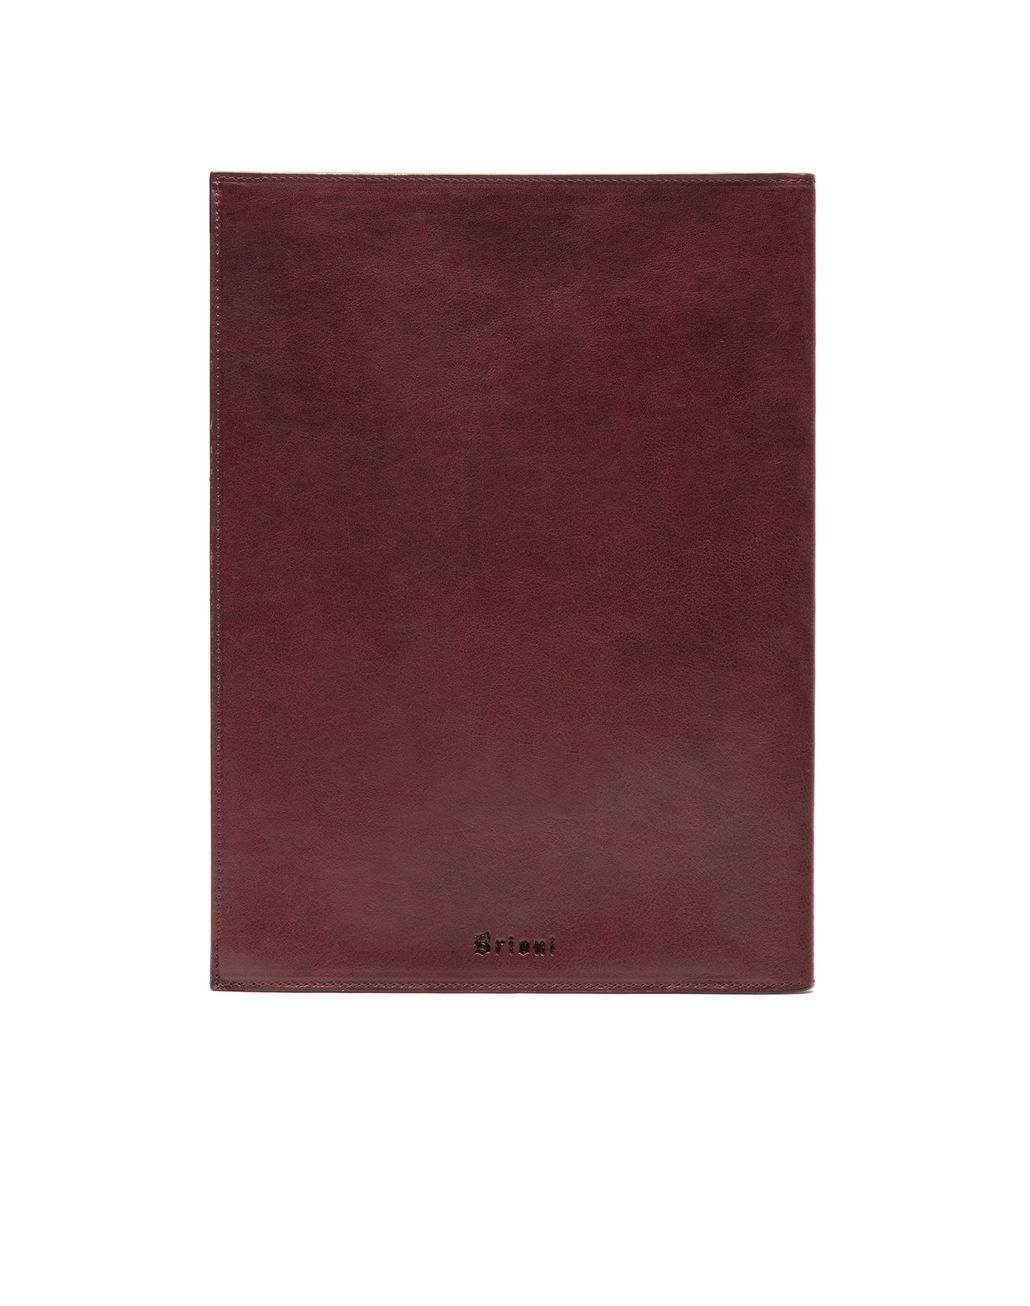 BRIONI Burgundy Zip Around Document Holder Leather Goods Man d